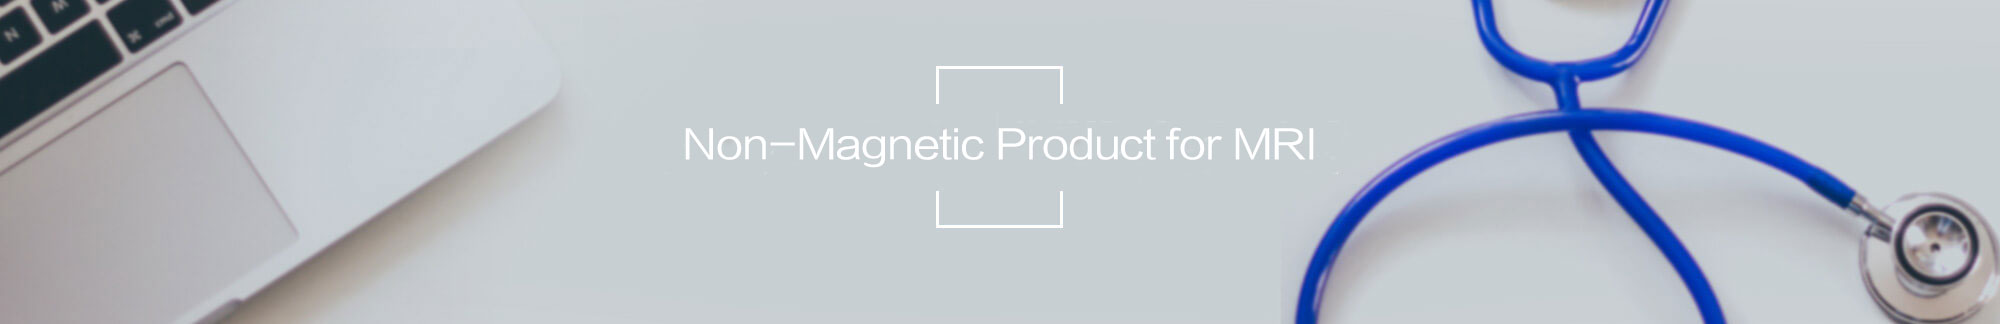 Non-Magnetic Product for MRI